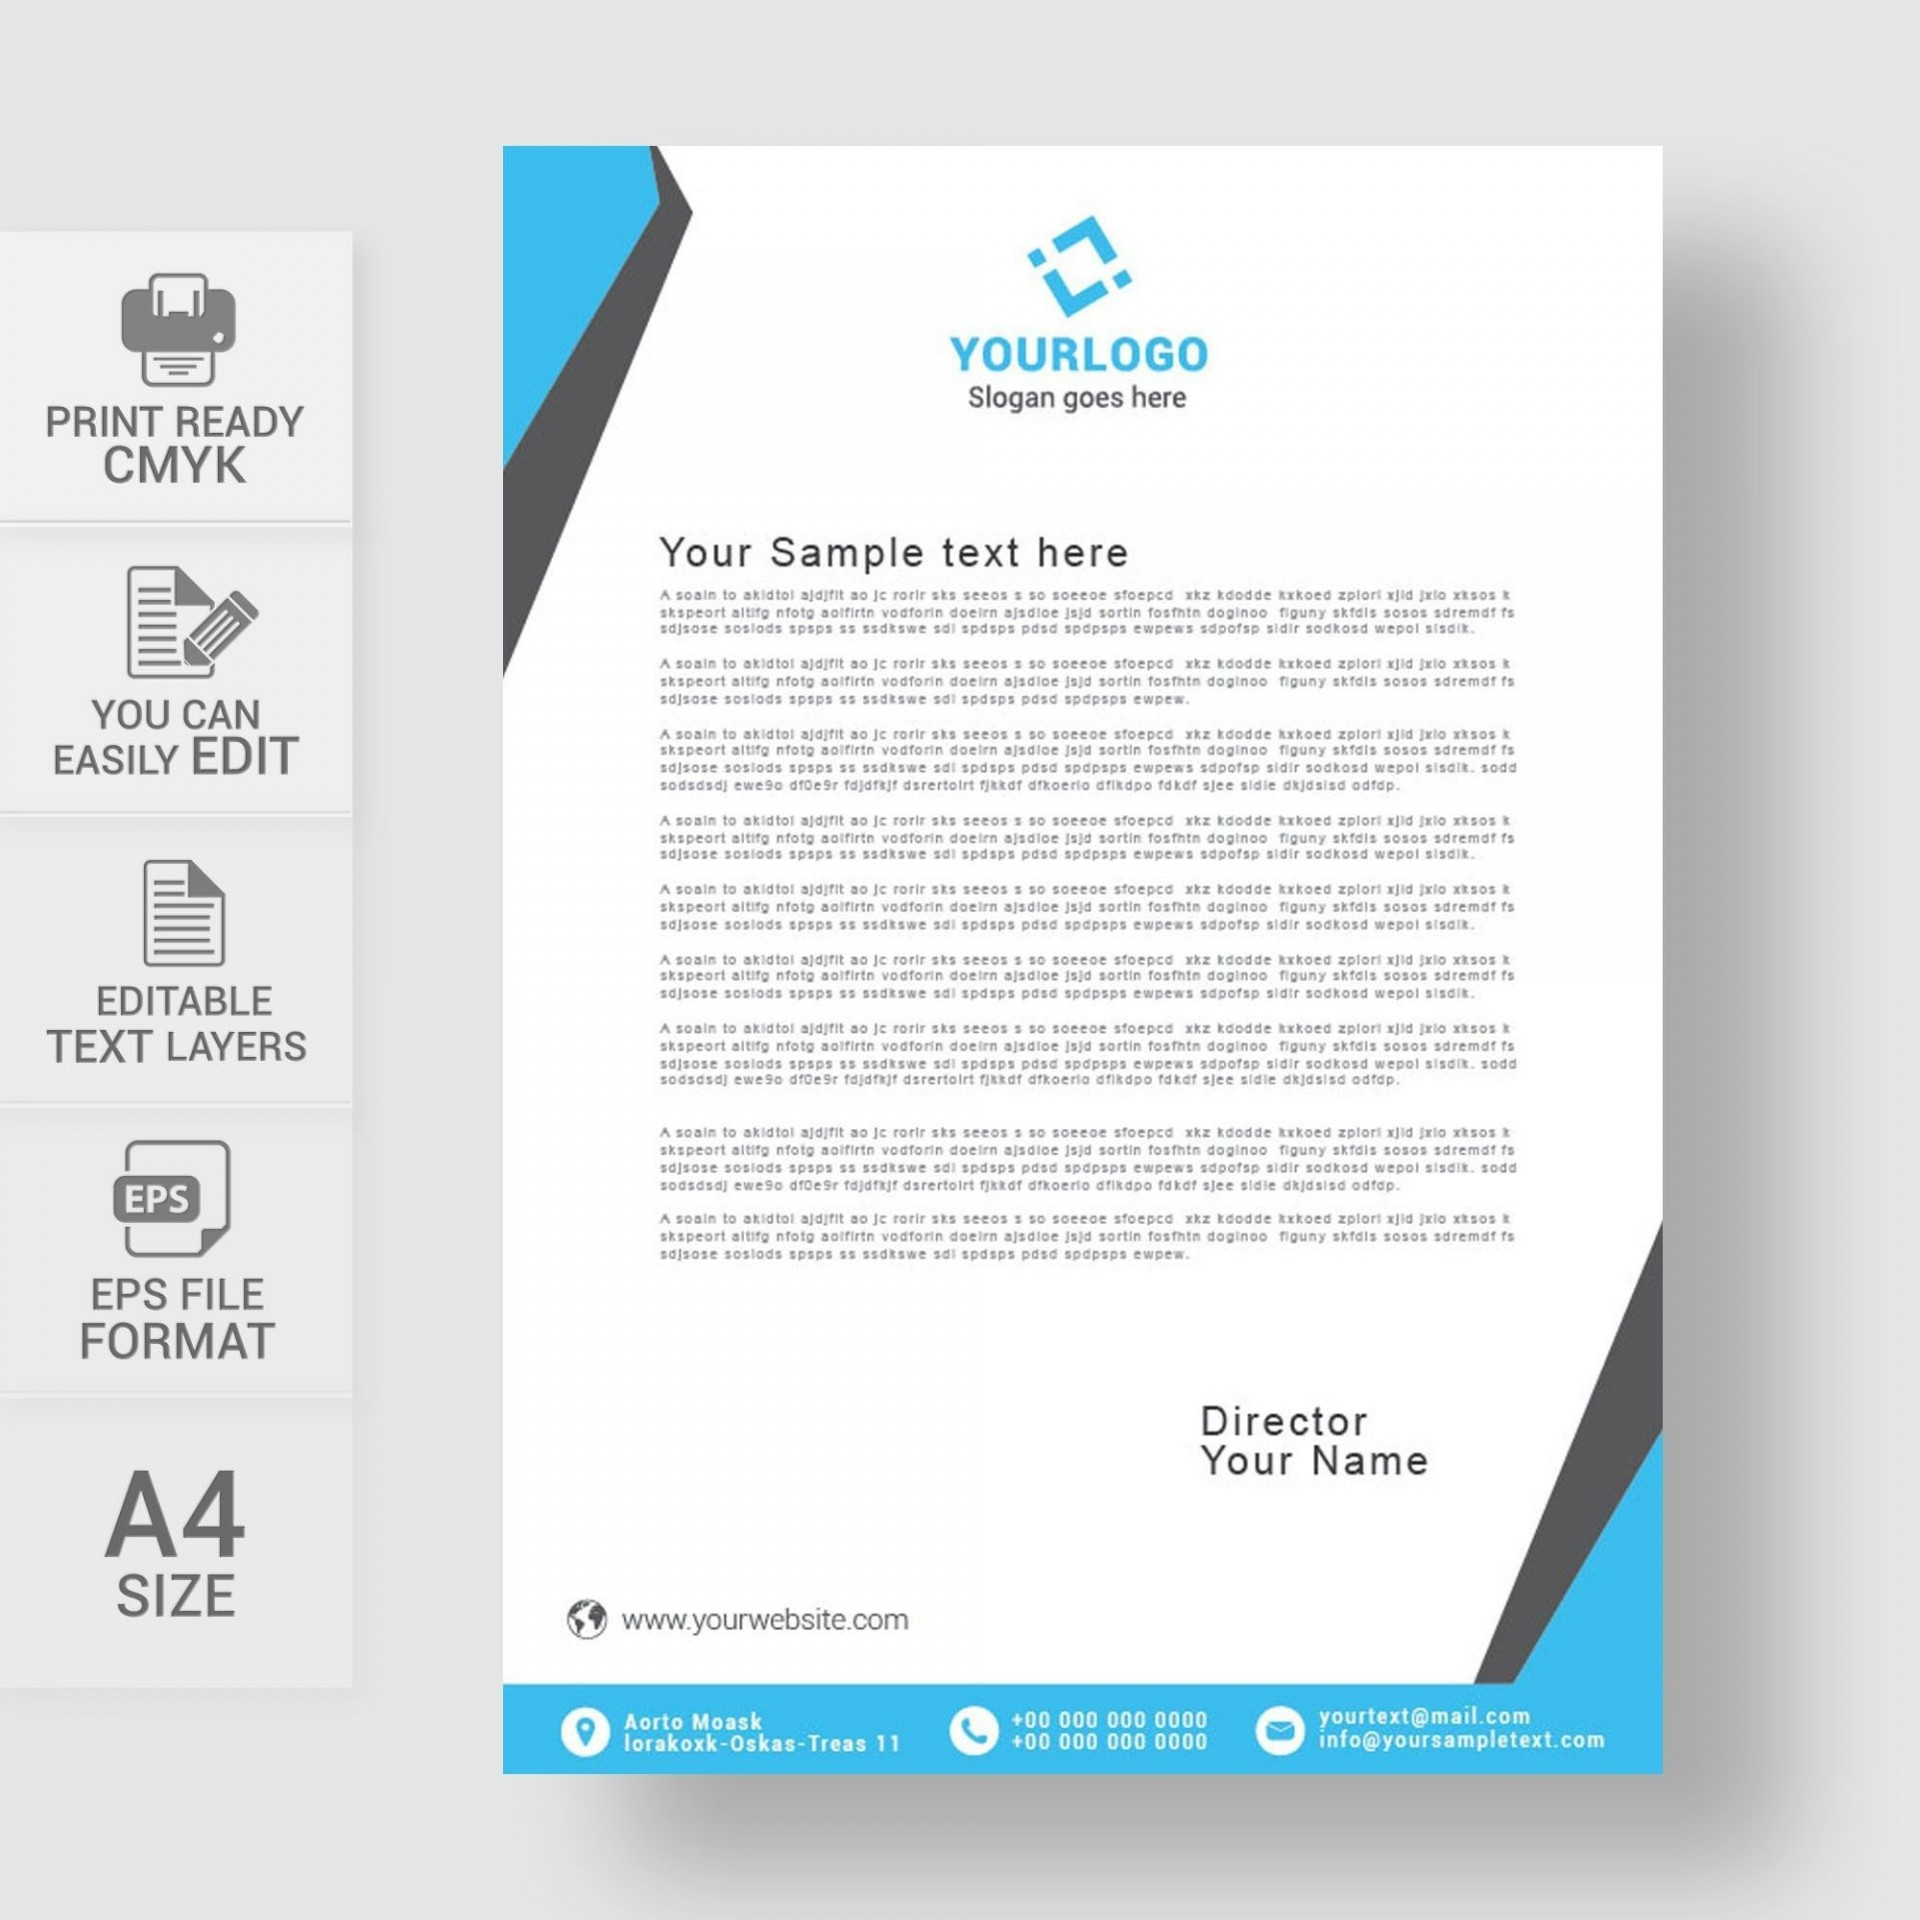 003 Unusual Letterhead Example Free Download Photo  Advocate Format Hospital In Word Pdf1920